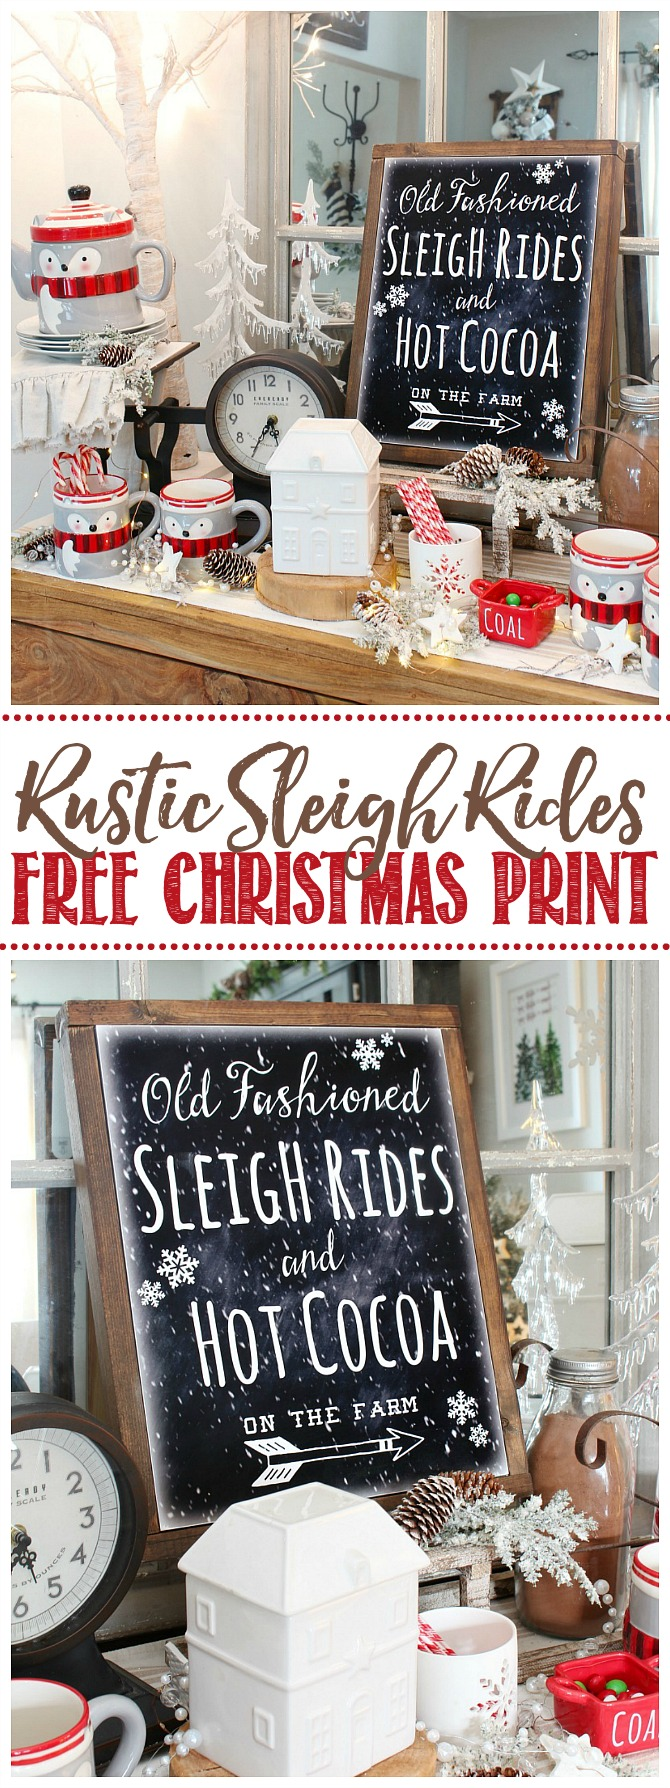 Chalkboard art Old Fashioned Sleigh Rides printable with a DIY canvas frame.